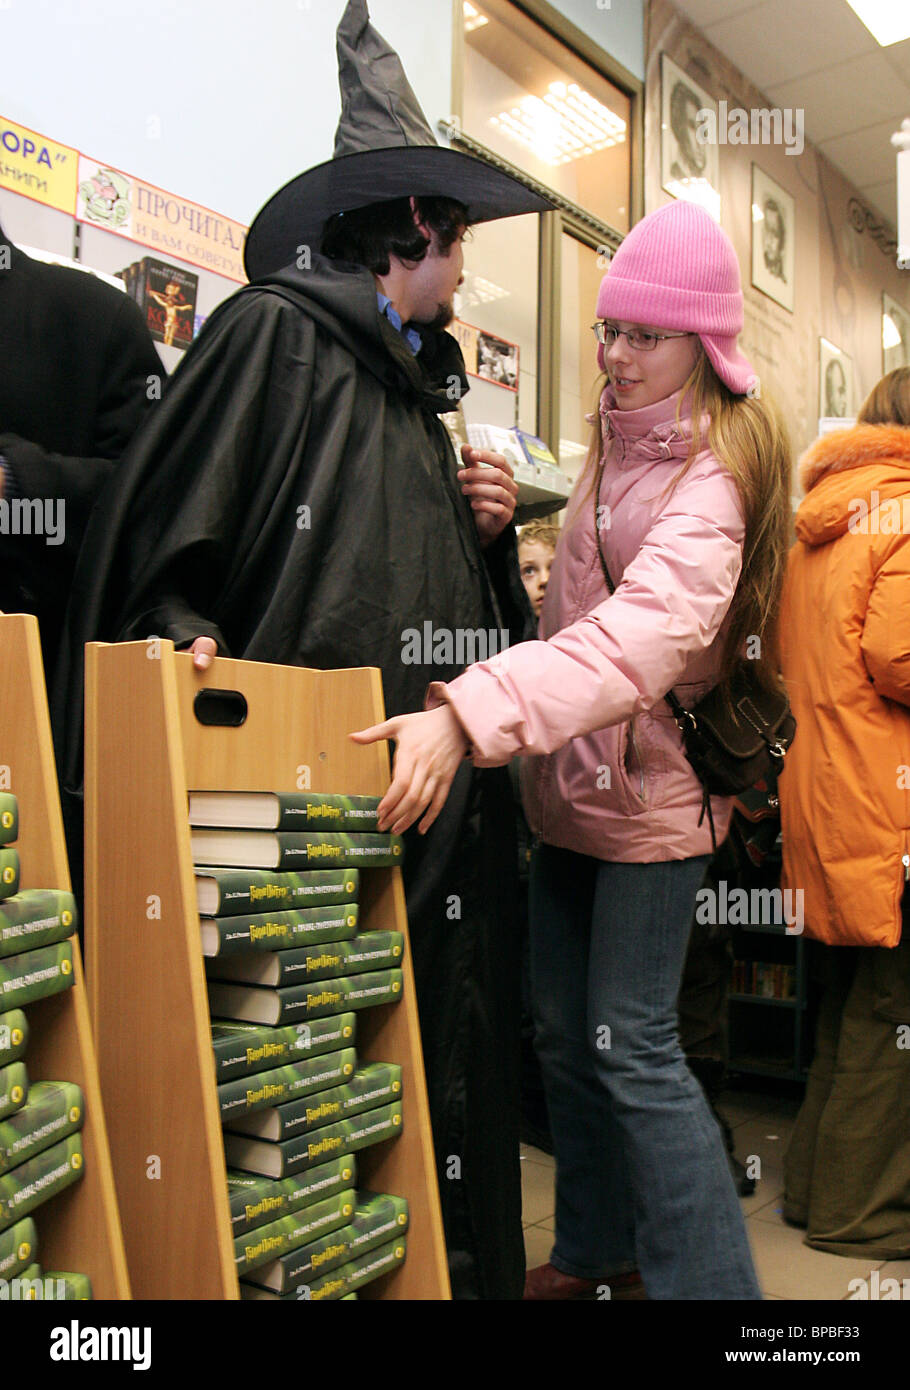 Sixth book in the Harry Potter series appears on sale in Moscow - Stock Image